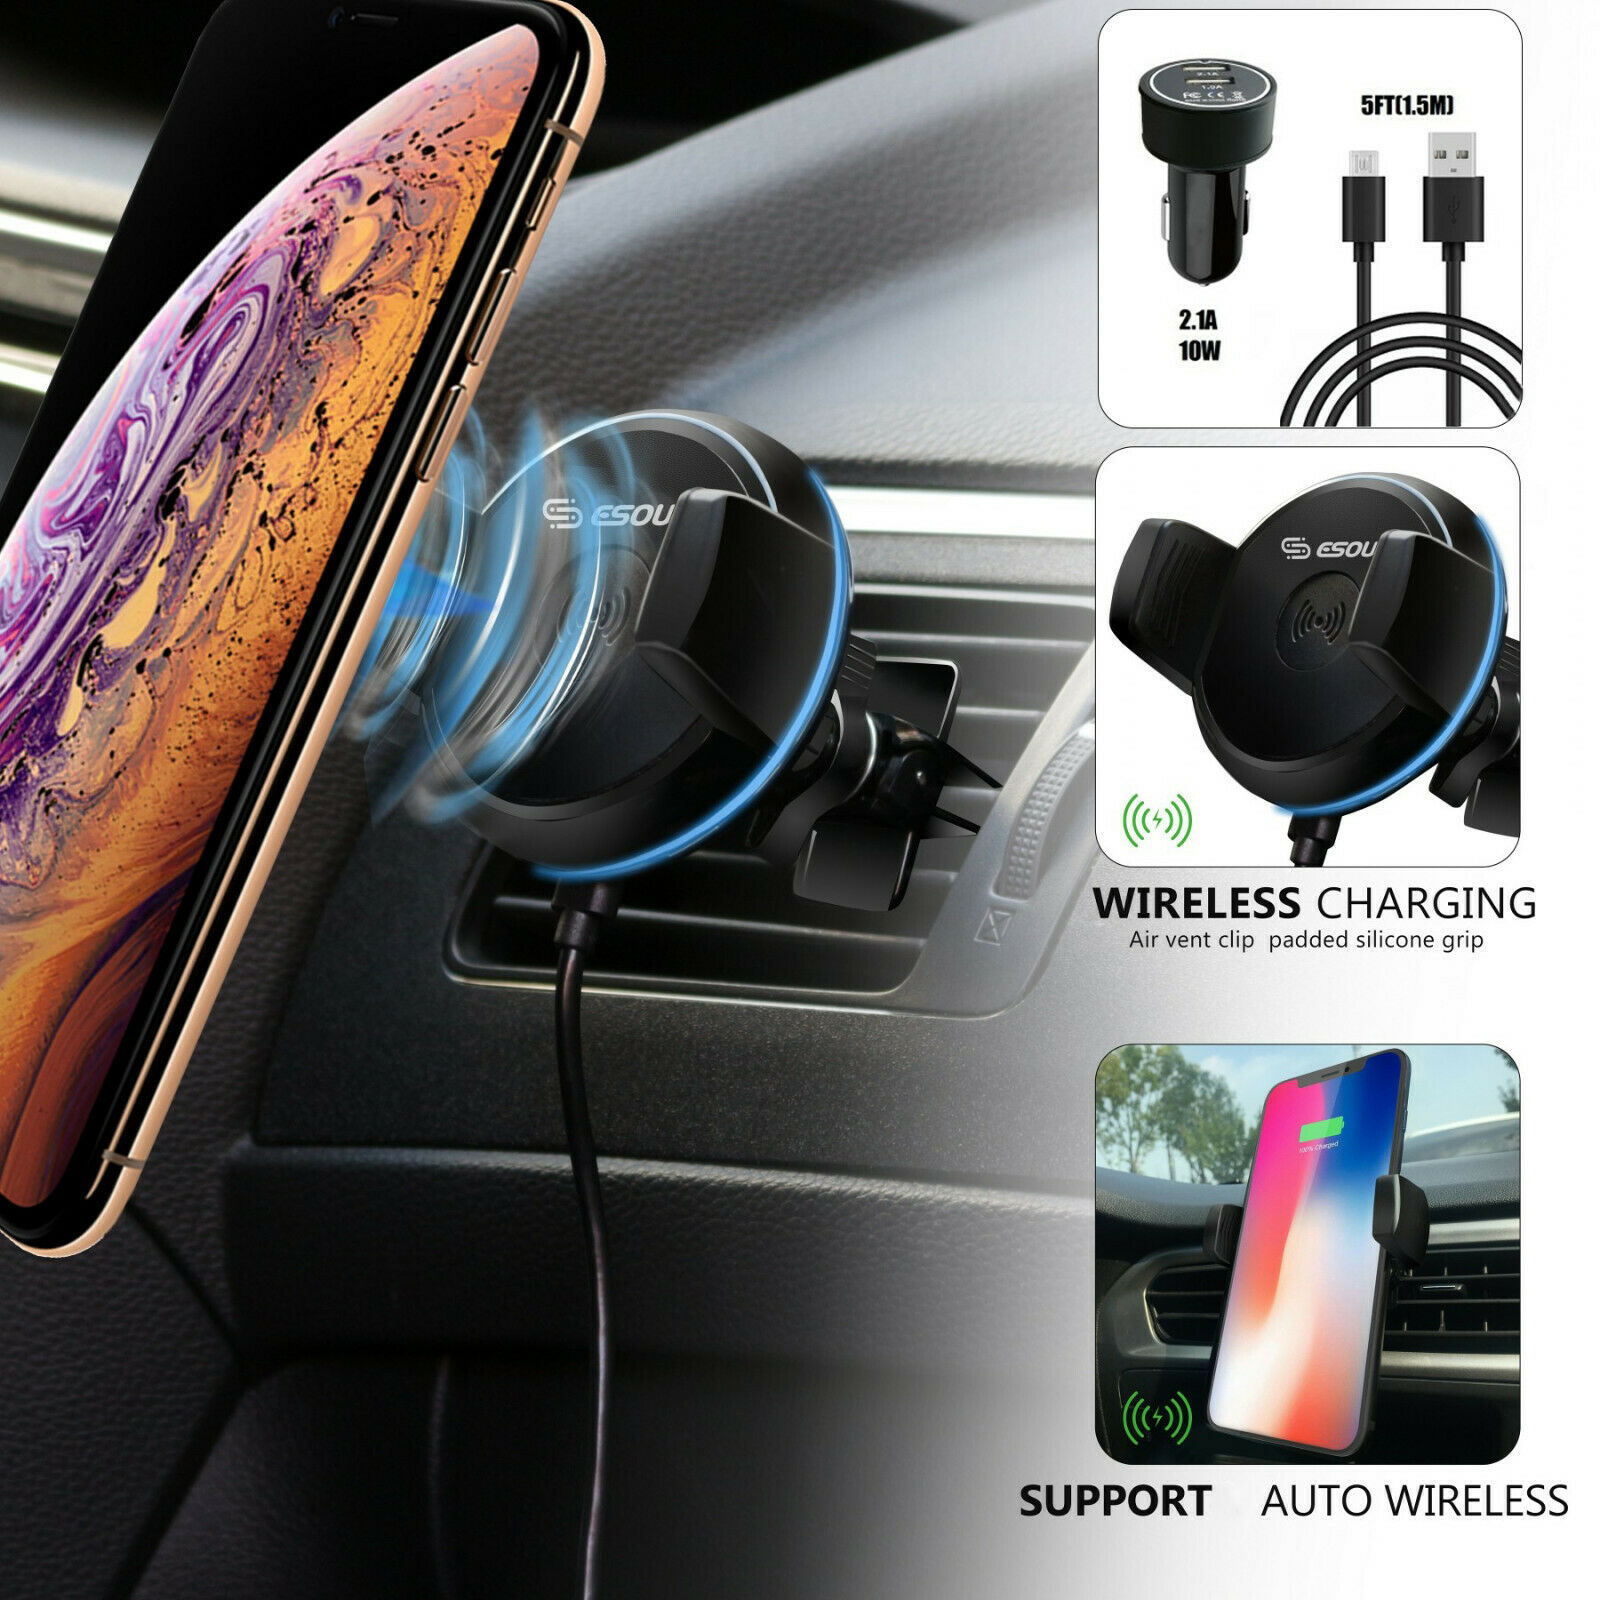 360-qi-wireless-charger-car-mount-holder-stand-3-in-1-set-for-uber-lyft-driver